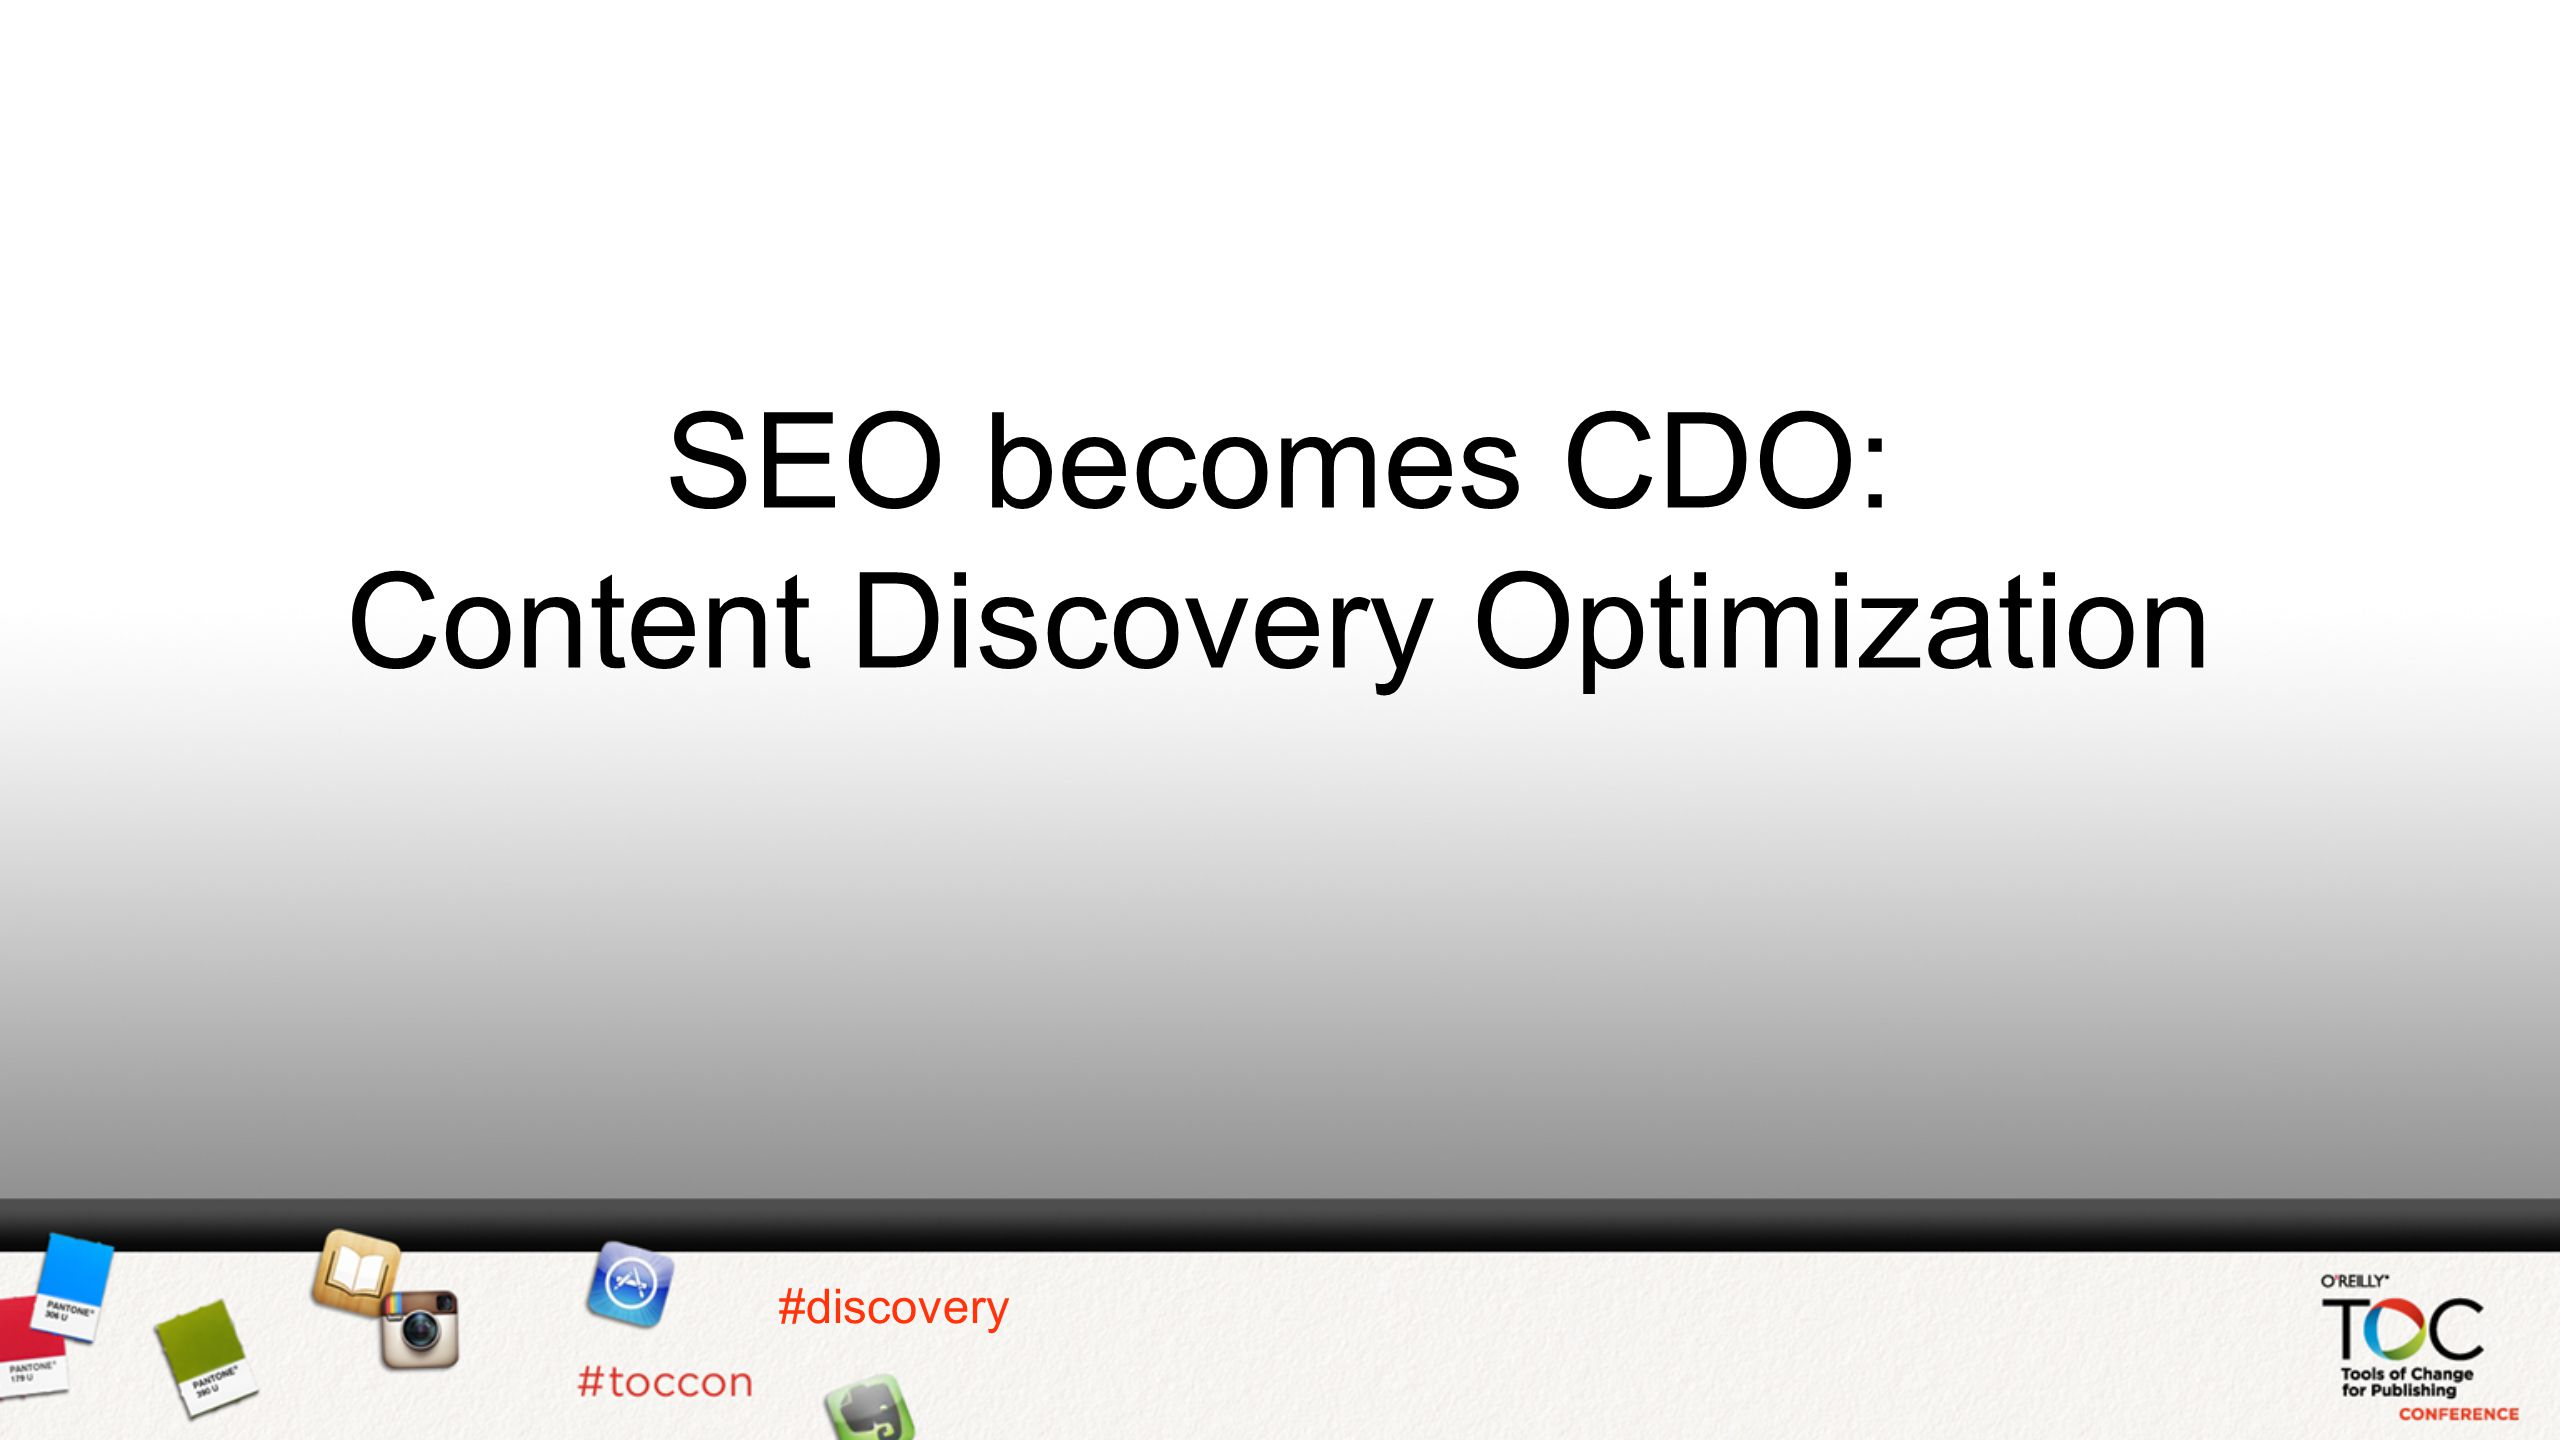 SEO becomes CDO: Content Discovery Optimization